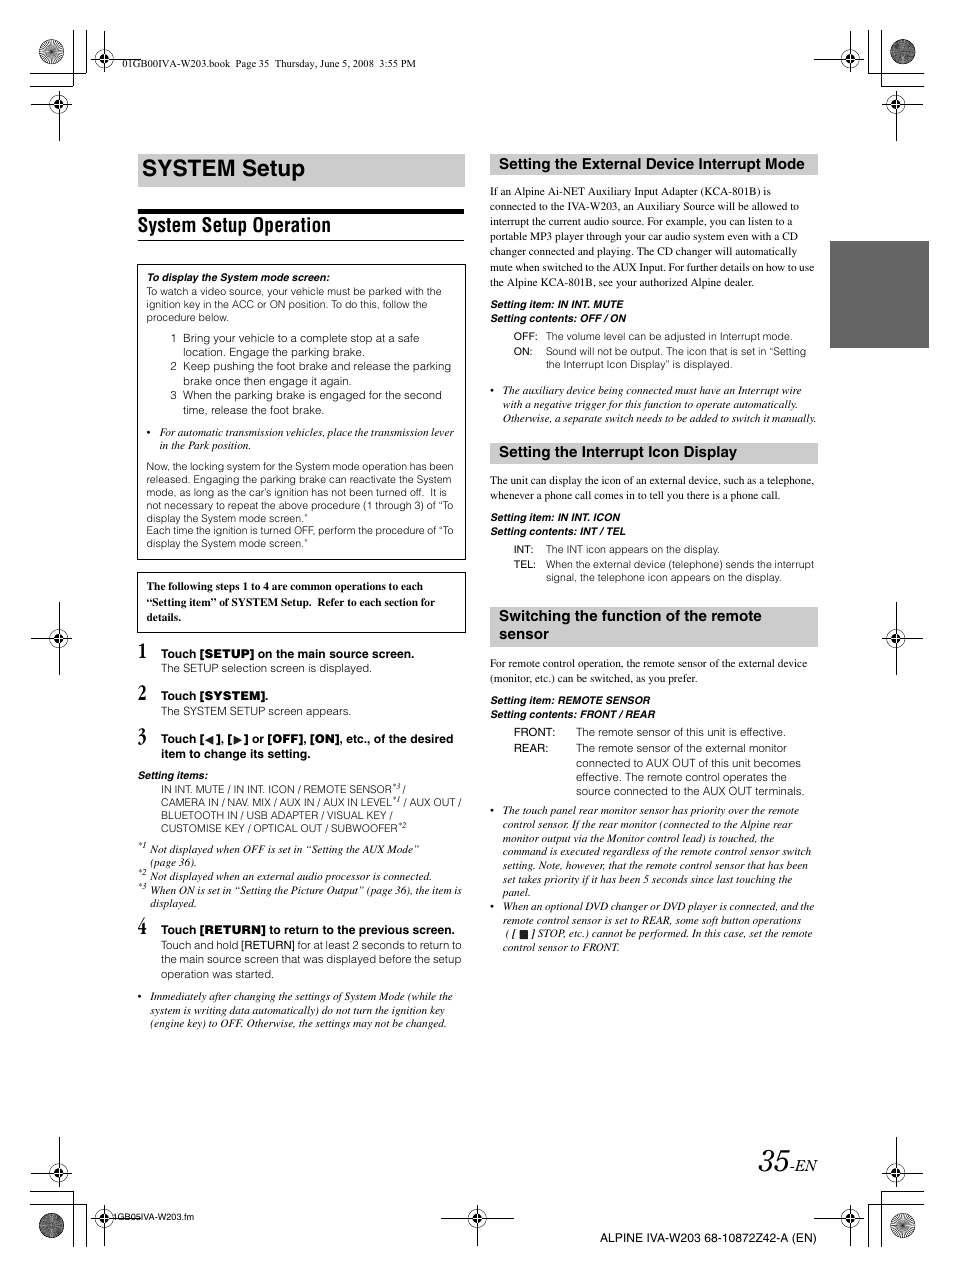 Alpine Iva W203 Wiring Diagram Free Download D310 System Setup Operation User Manual Clayton Mobile Home